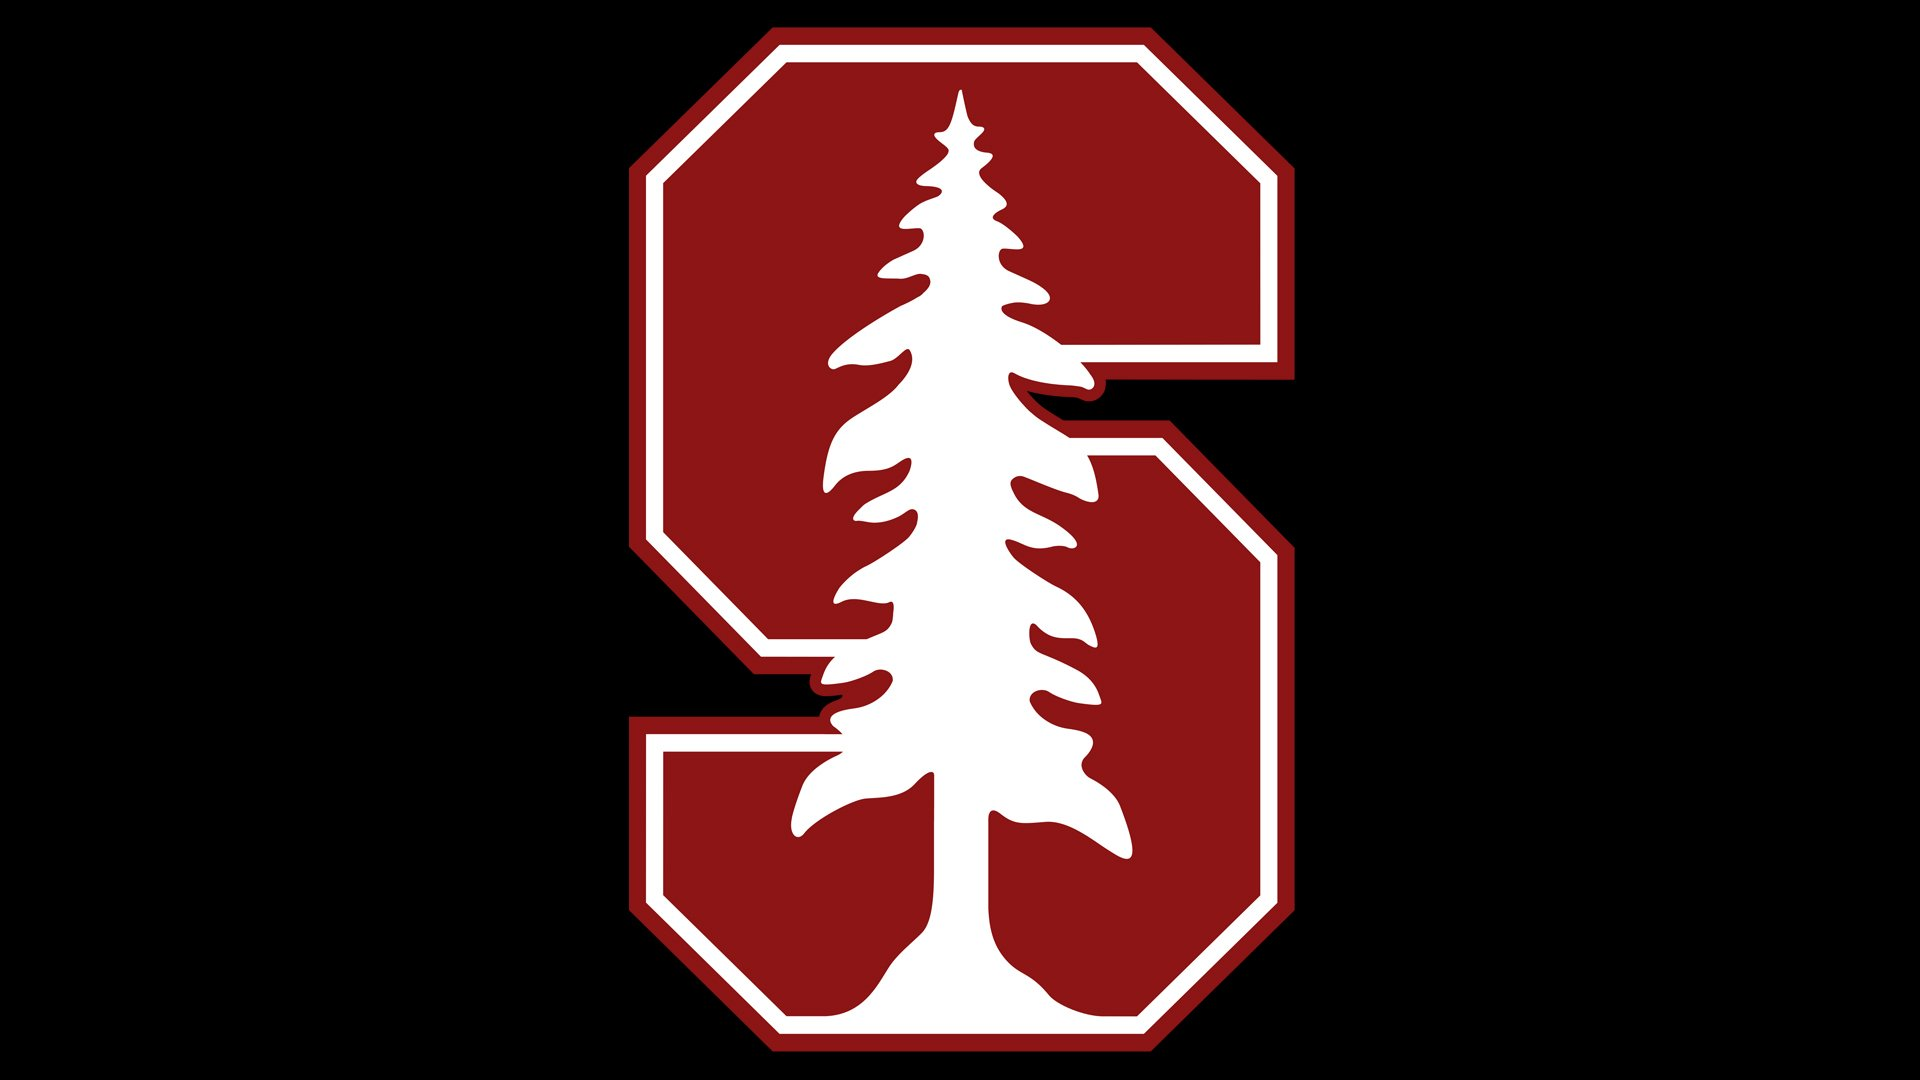 There Are Two Basic Versions Of The Signature One Featuring Word Stanford Only Other Text University